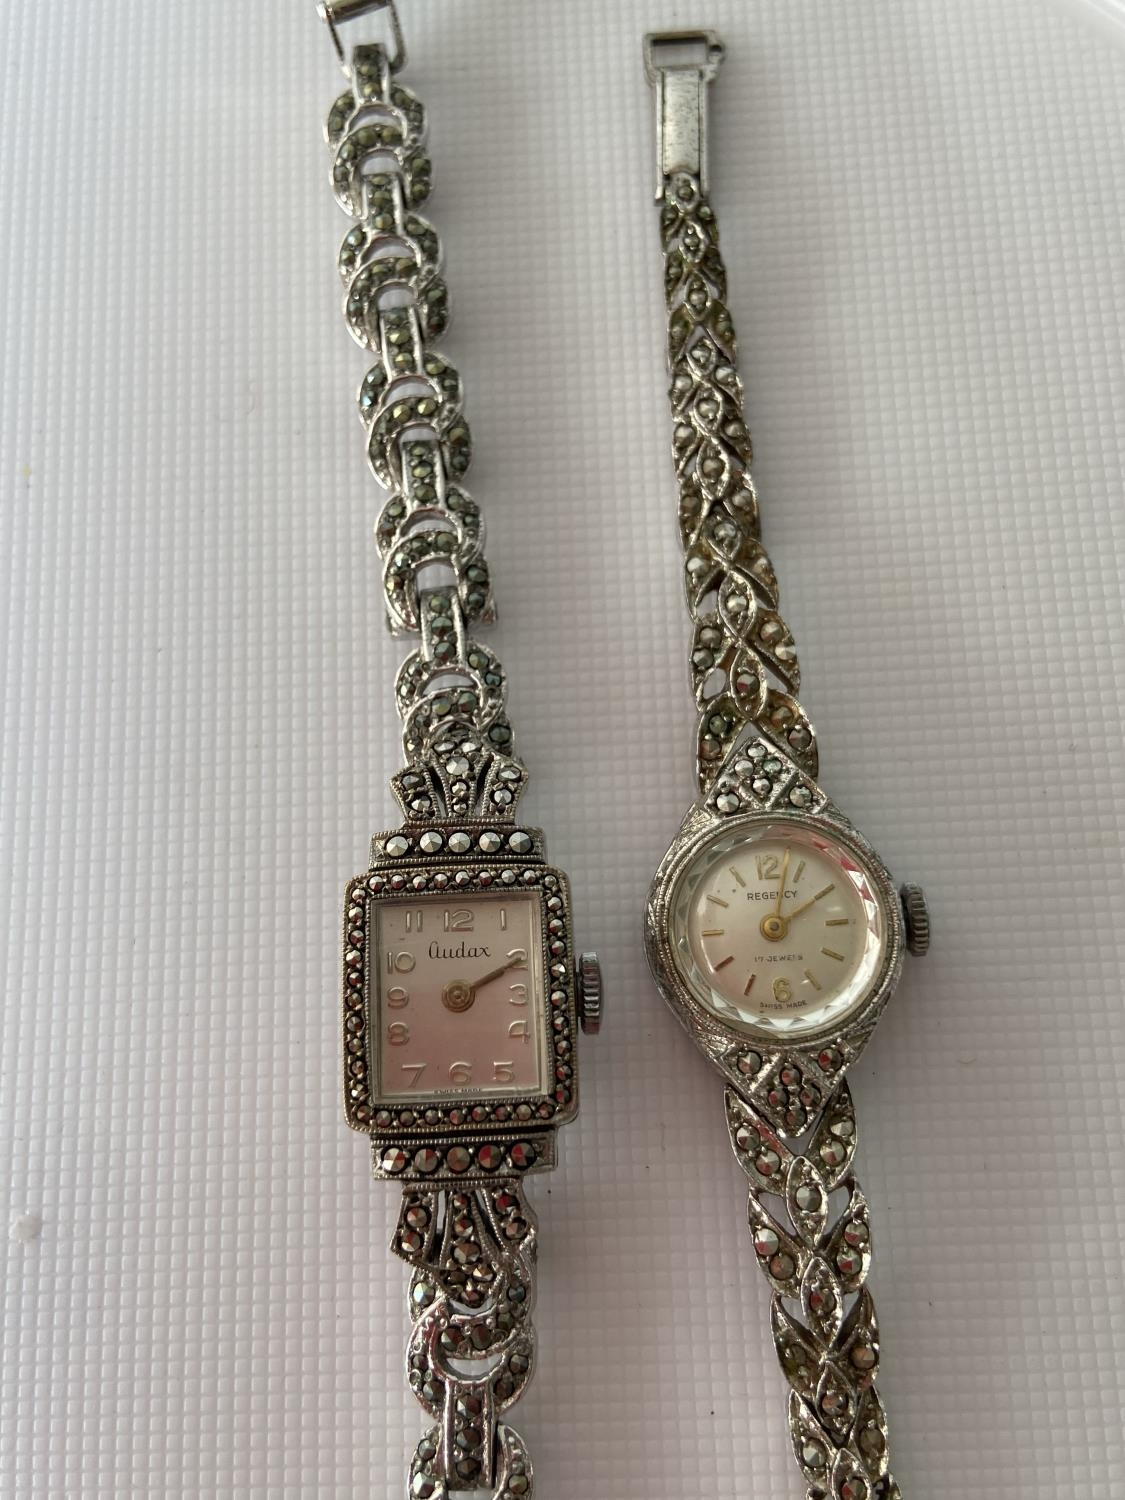 A vintage ladies 925 silver wrist watch produced by Regency [17 jewel] [working] fitted with - Image 3 of 6